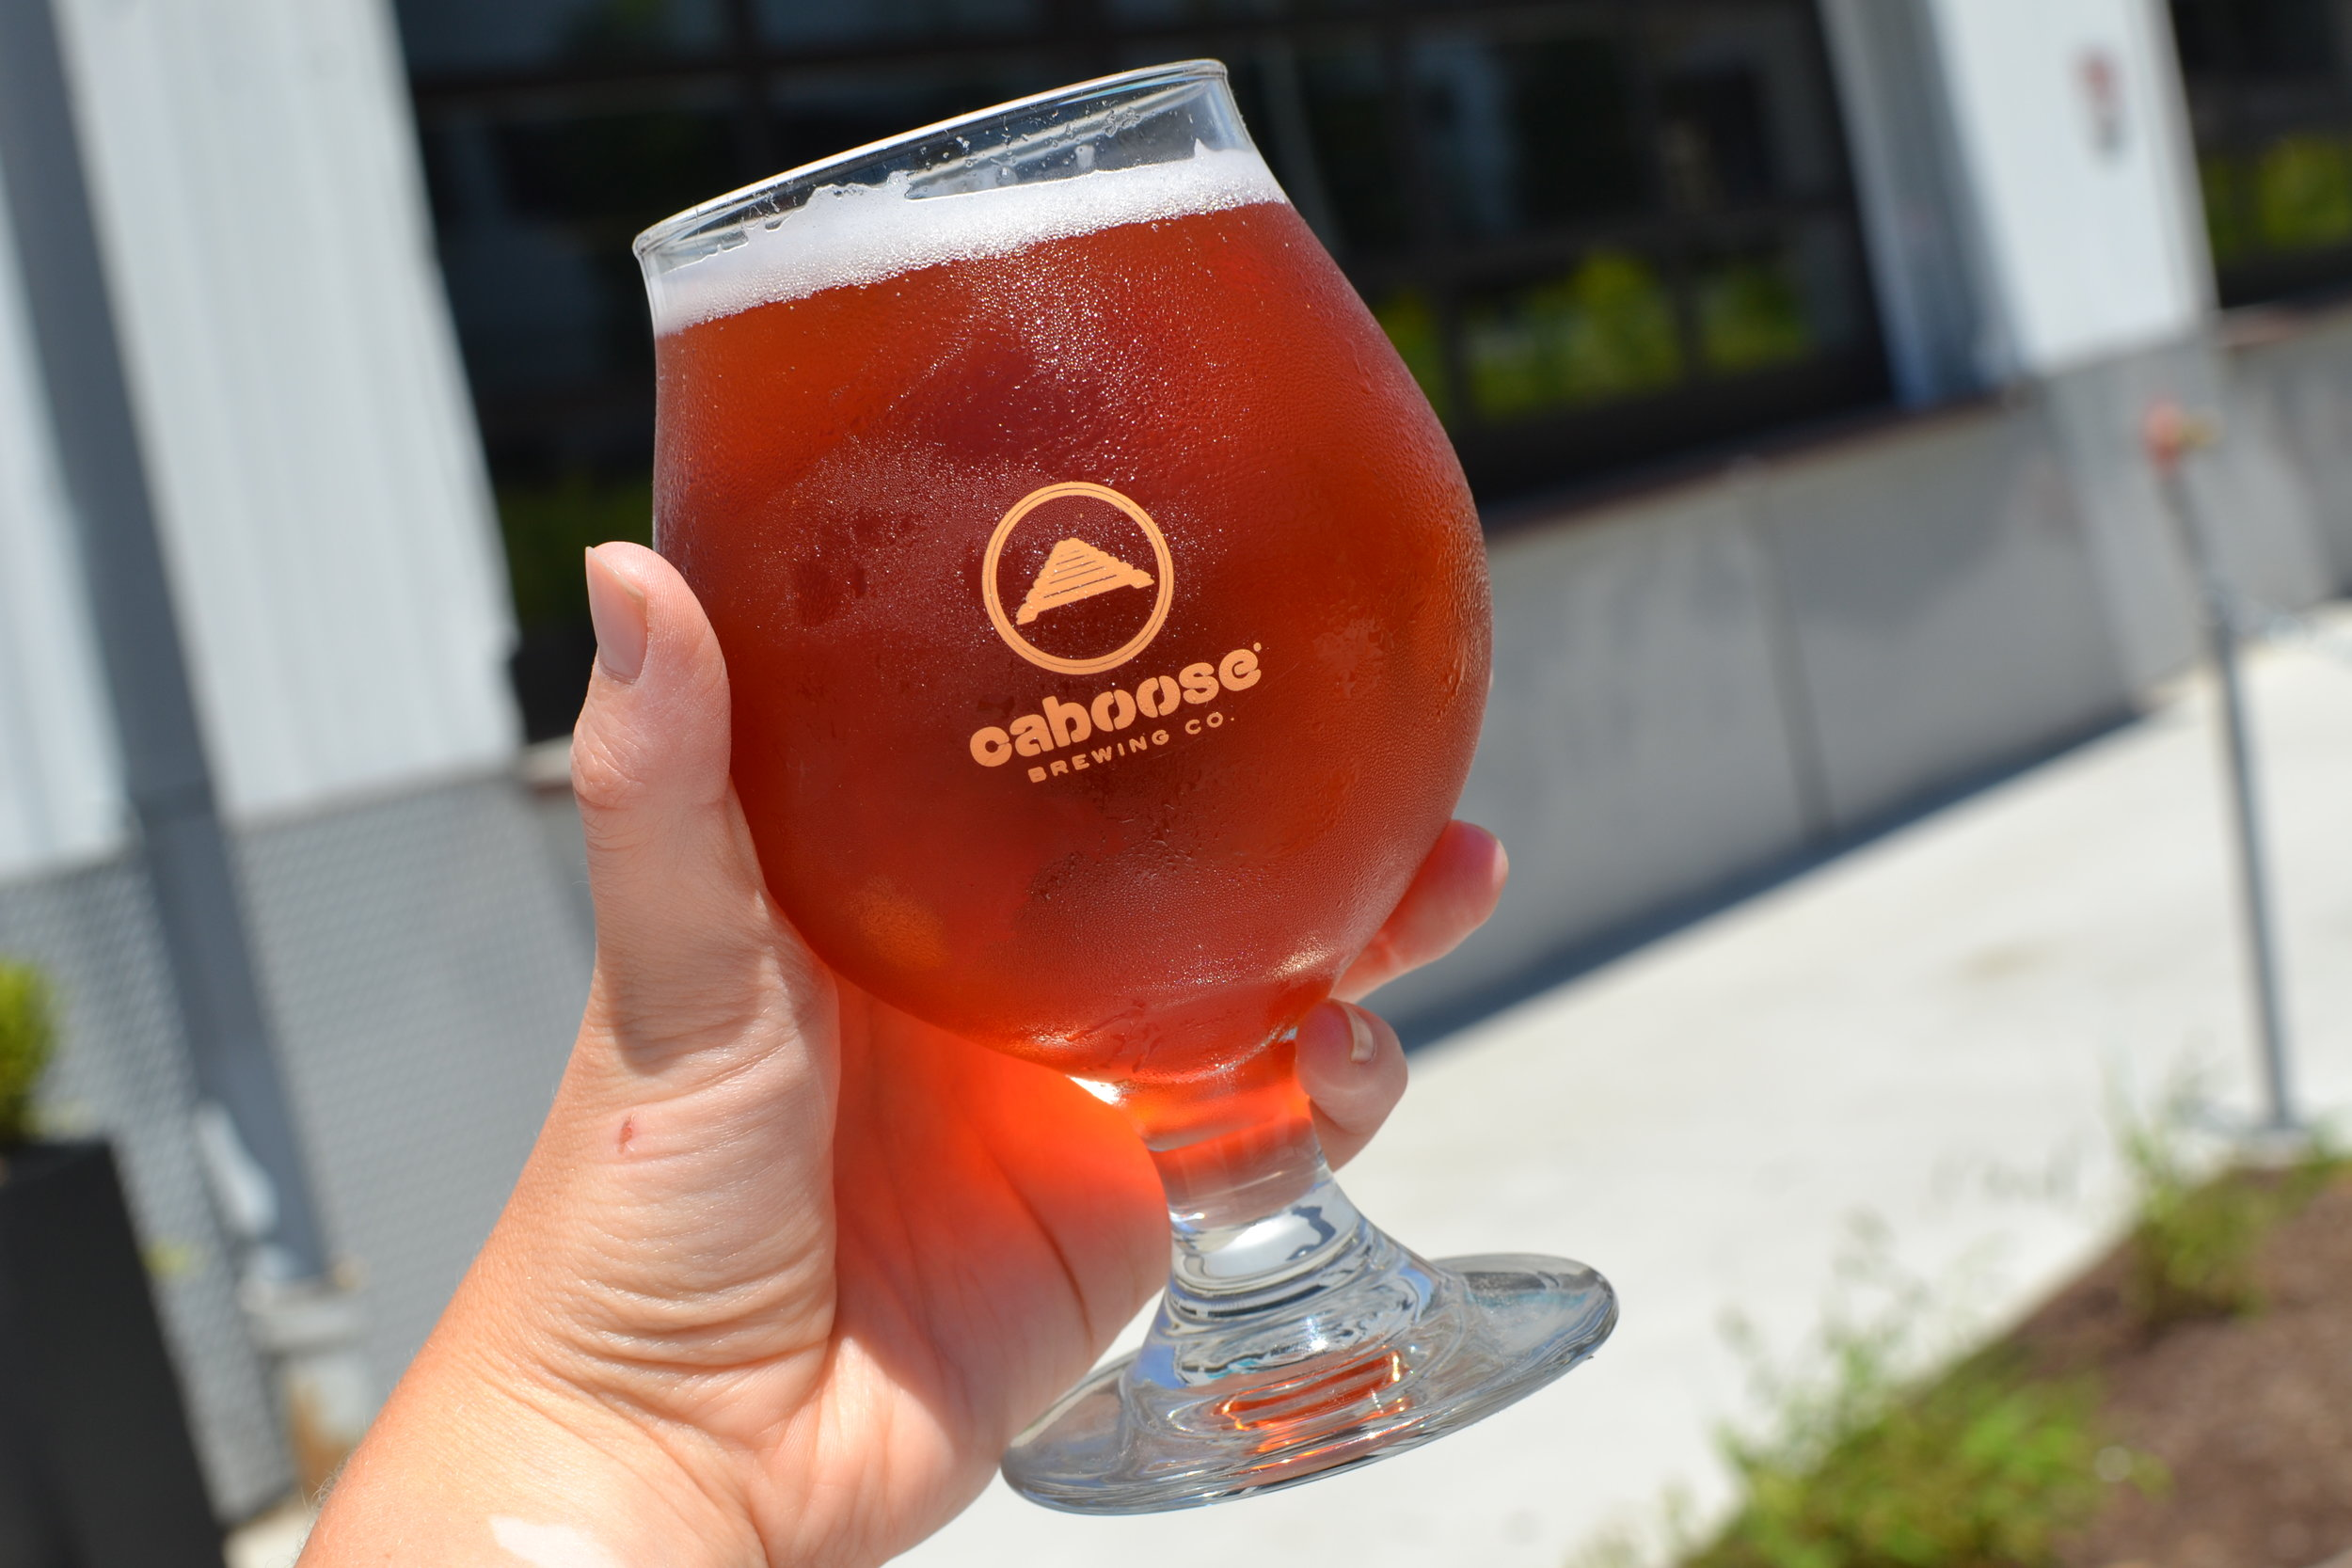 Raspberry Lokaal at Caboose Commons